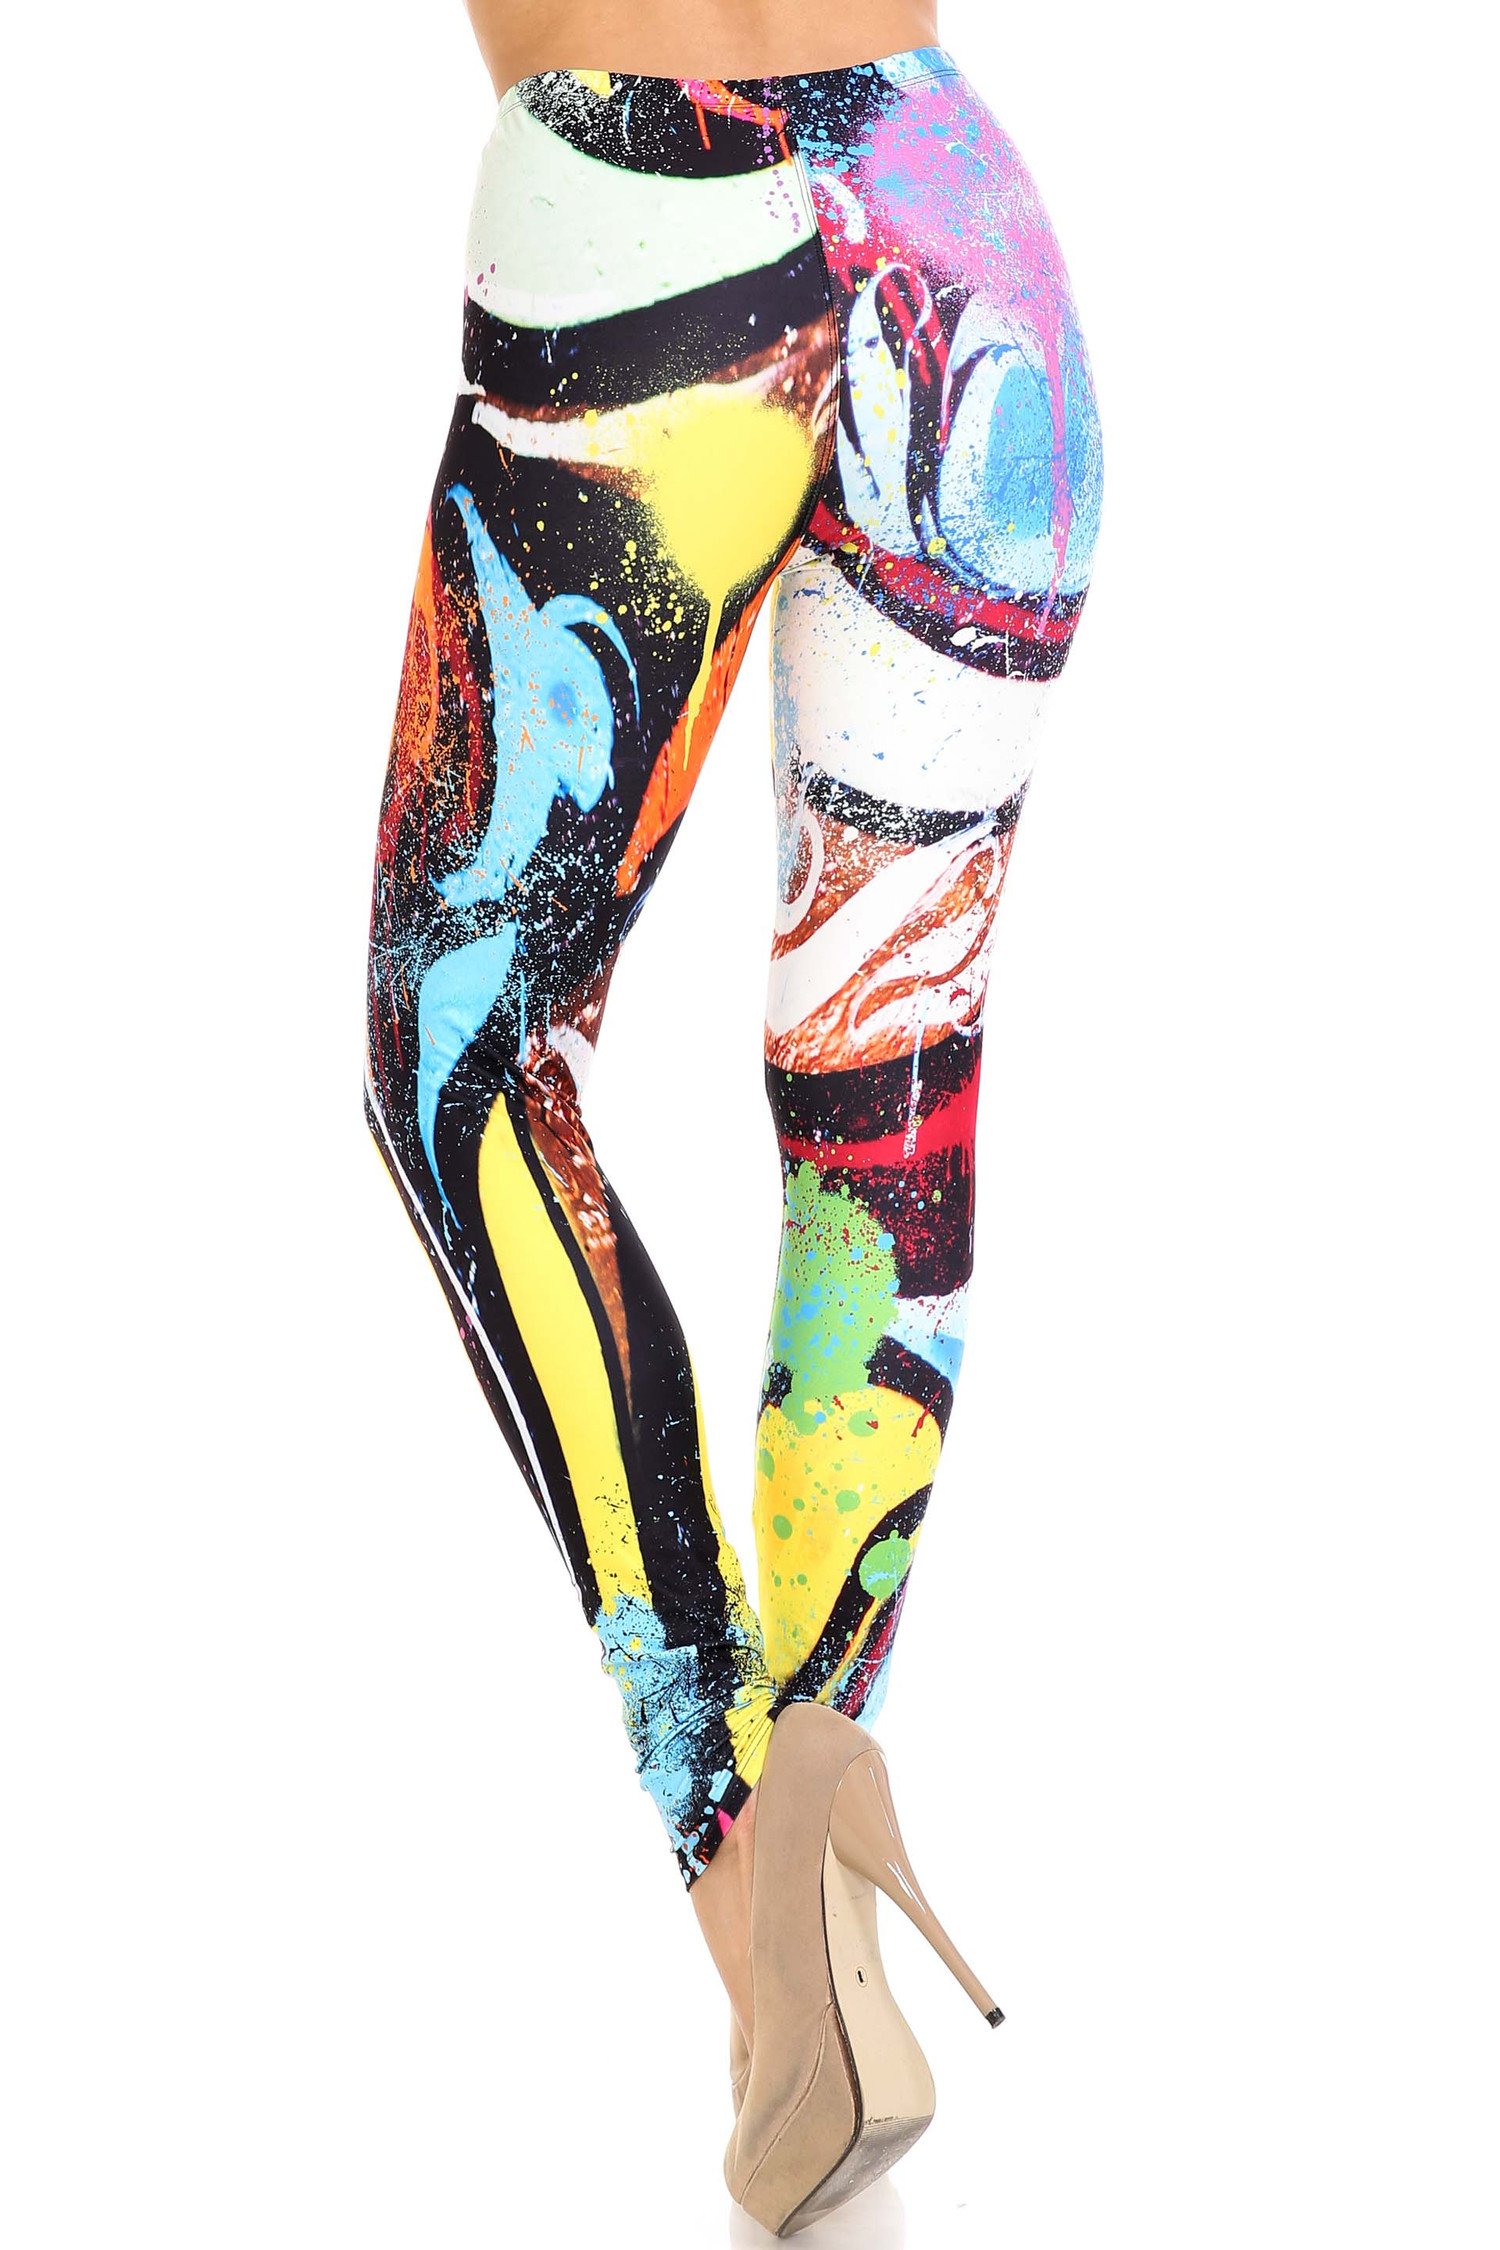 Creamy Soft Colorful Paint Strokes Leggings - USA Fashion™